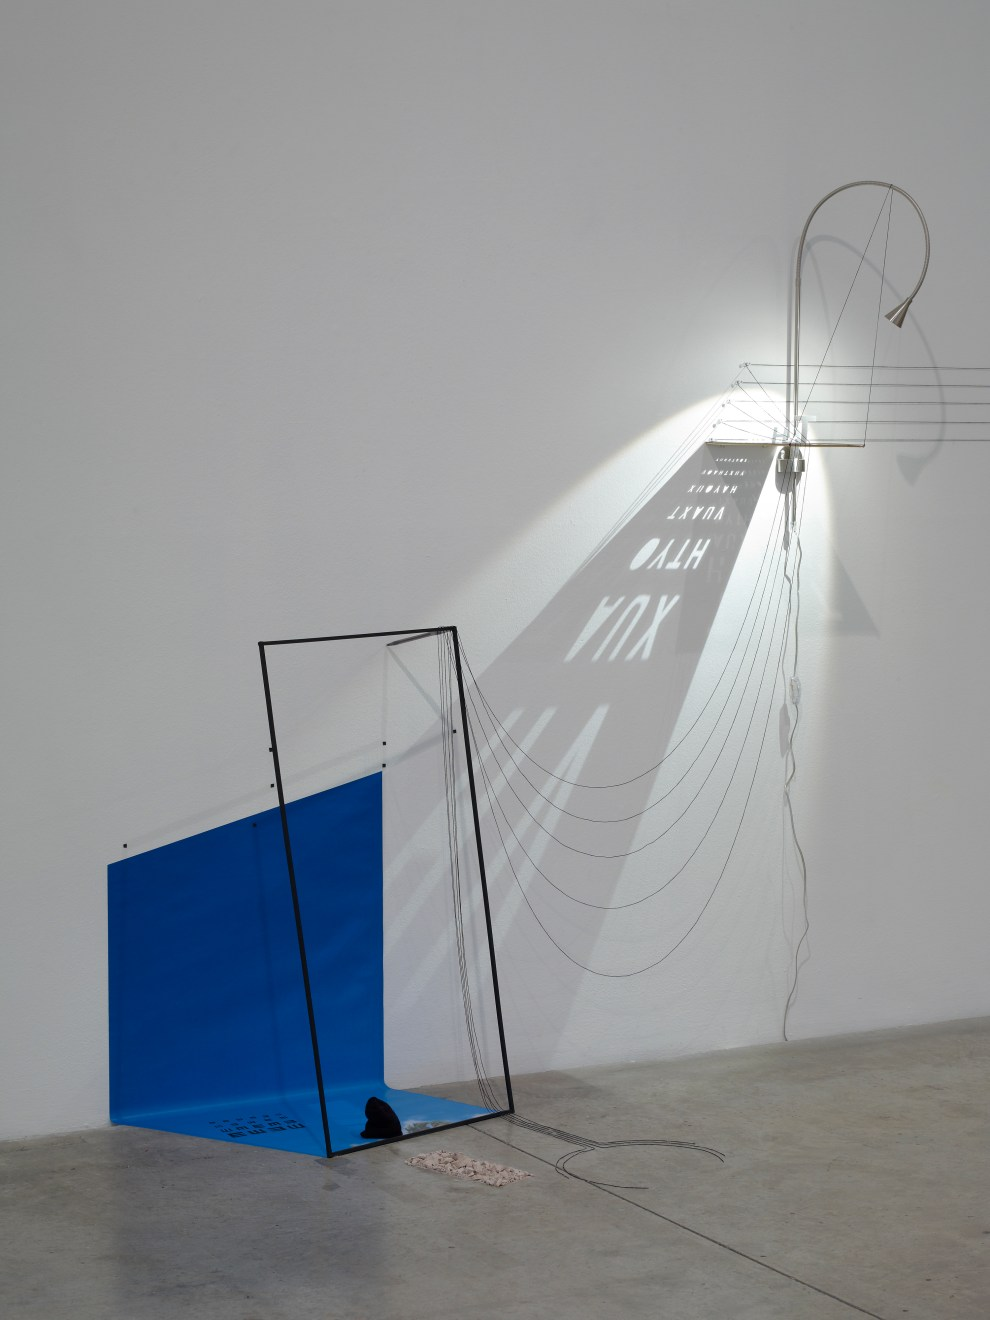 Sarah Sze, Victoria Miro Gallery, Positive Magazine, London